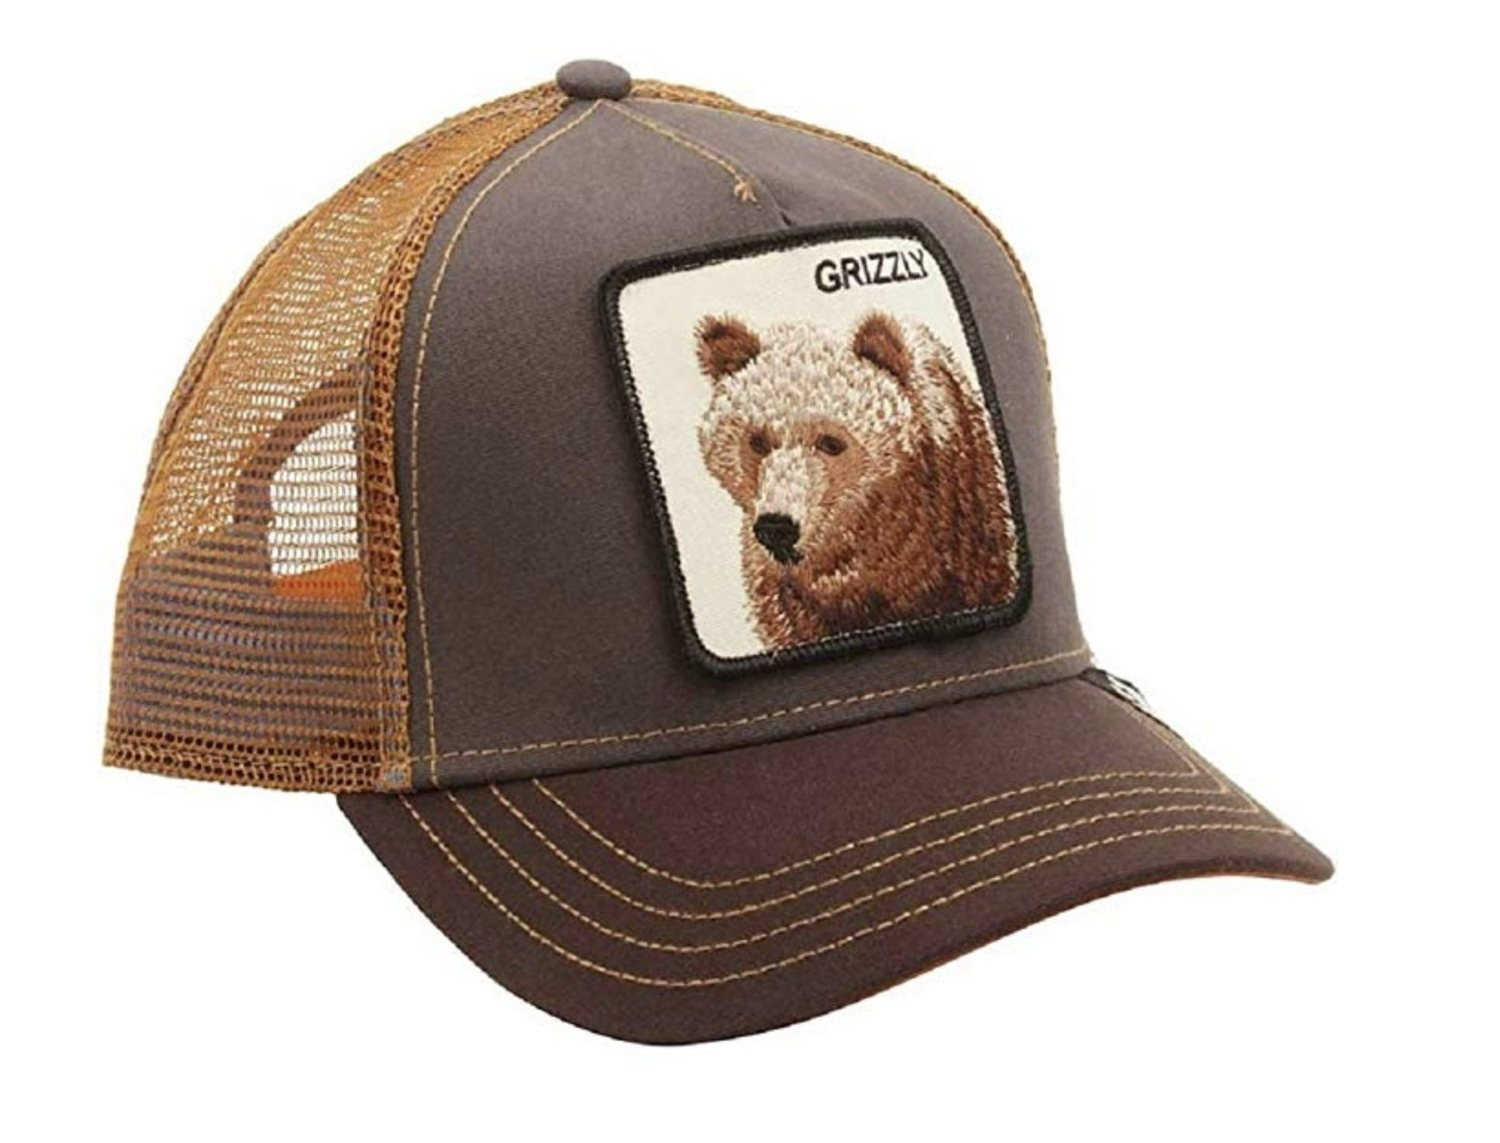 Gorra trucker marrón de oso grizzly.